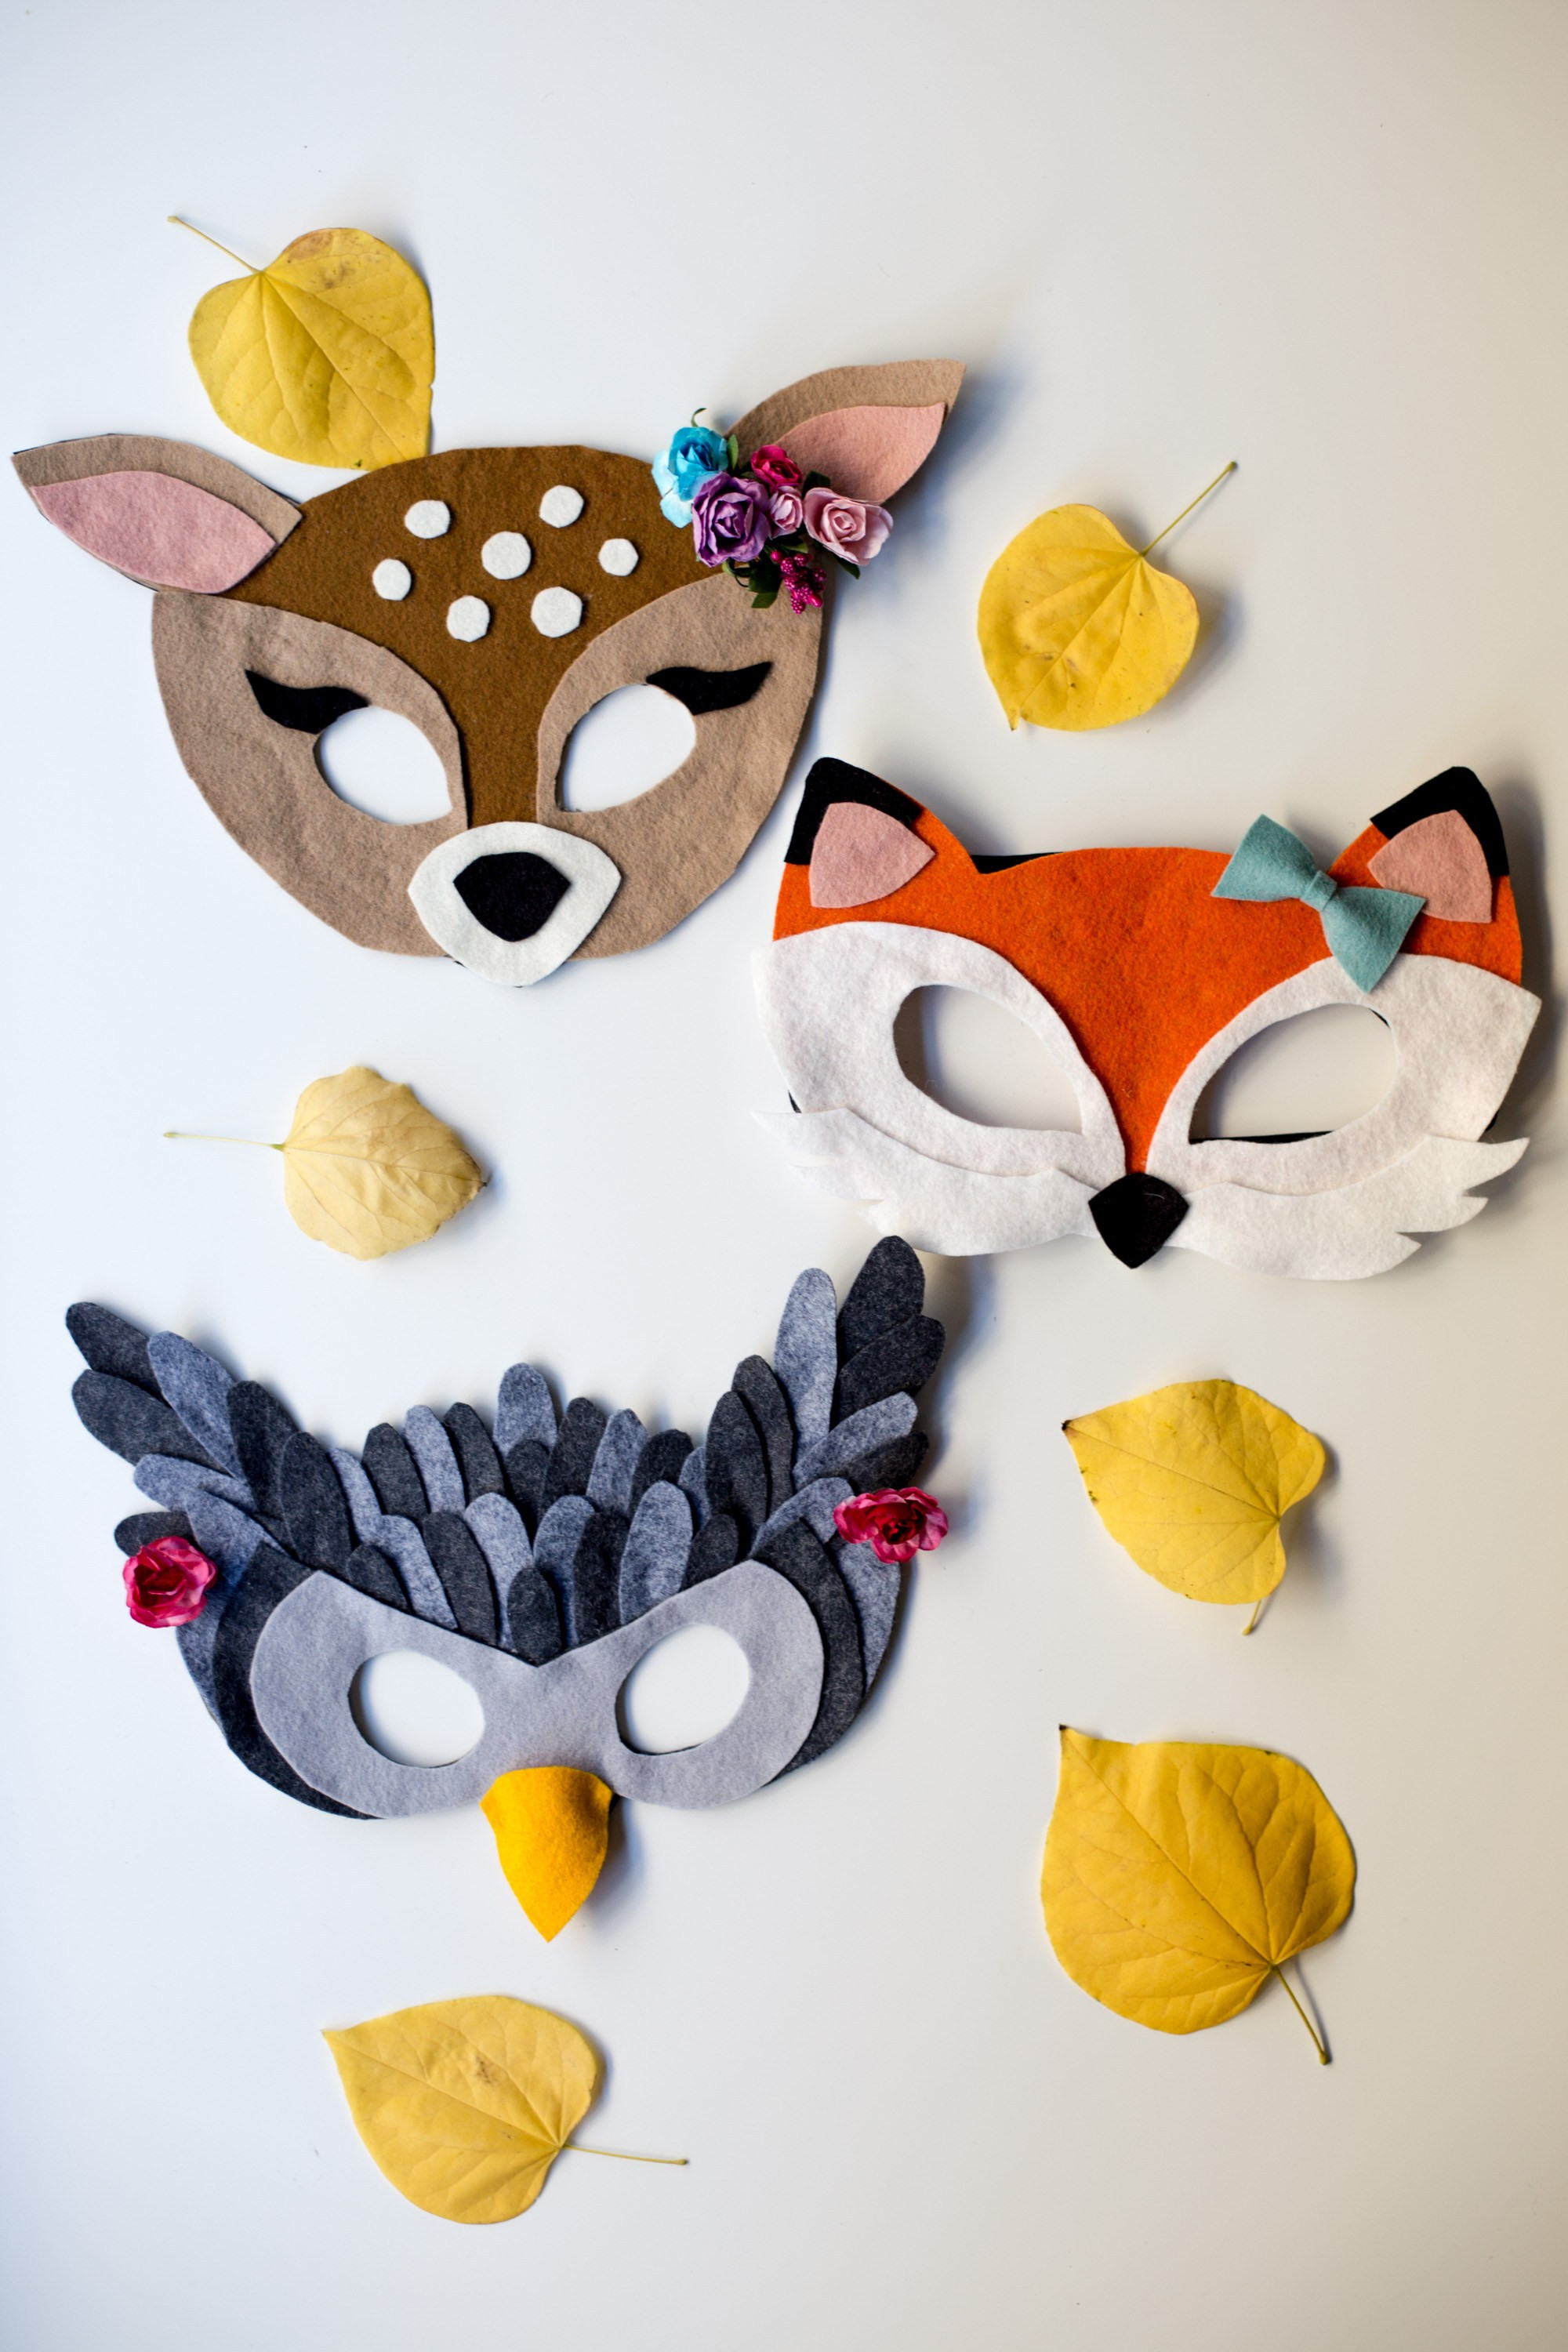 Best ideas about DIY Animal Masks . Save or Pin No Sew Free Felt Animal Mask Patterns Flax & Twine Now.